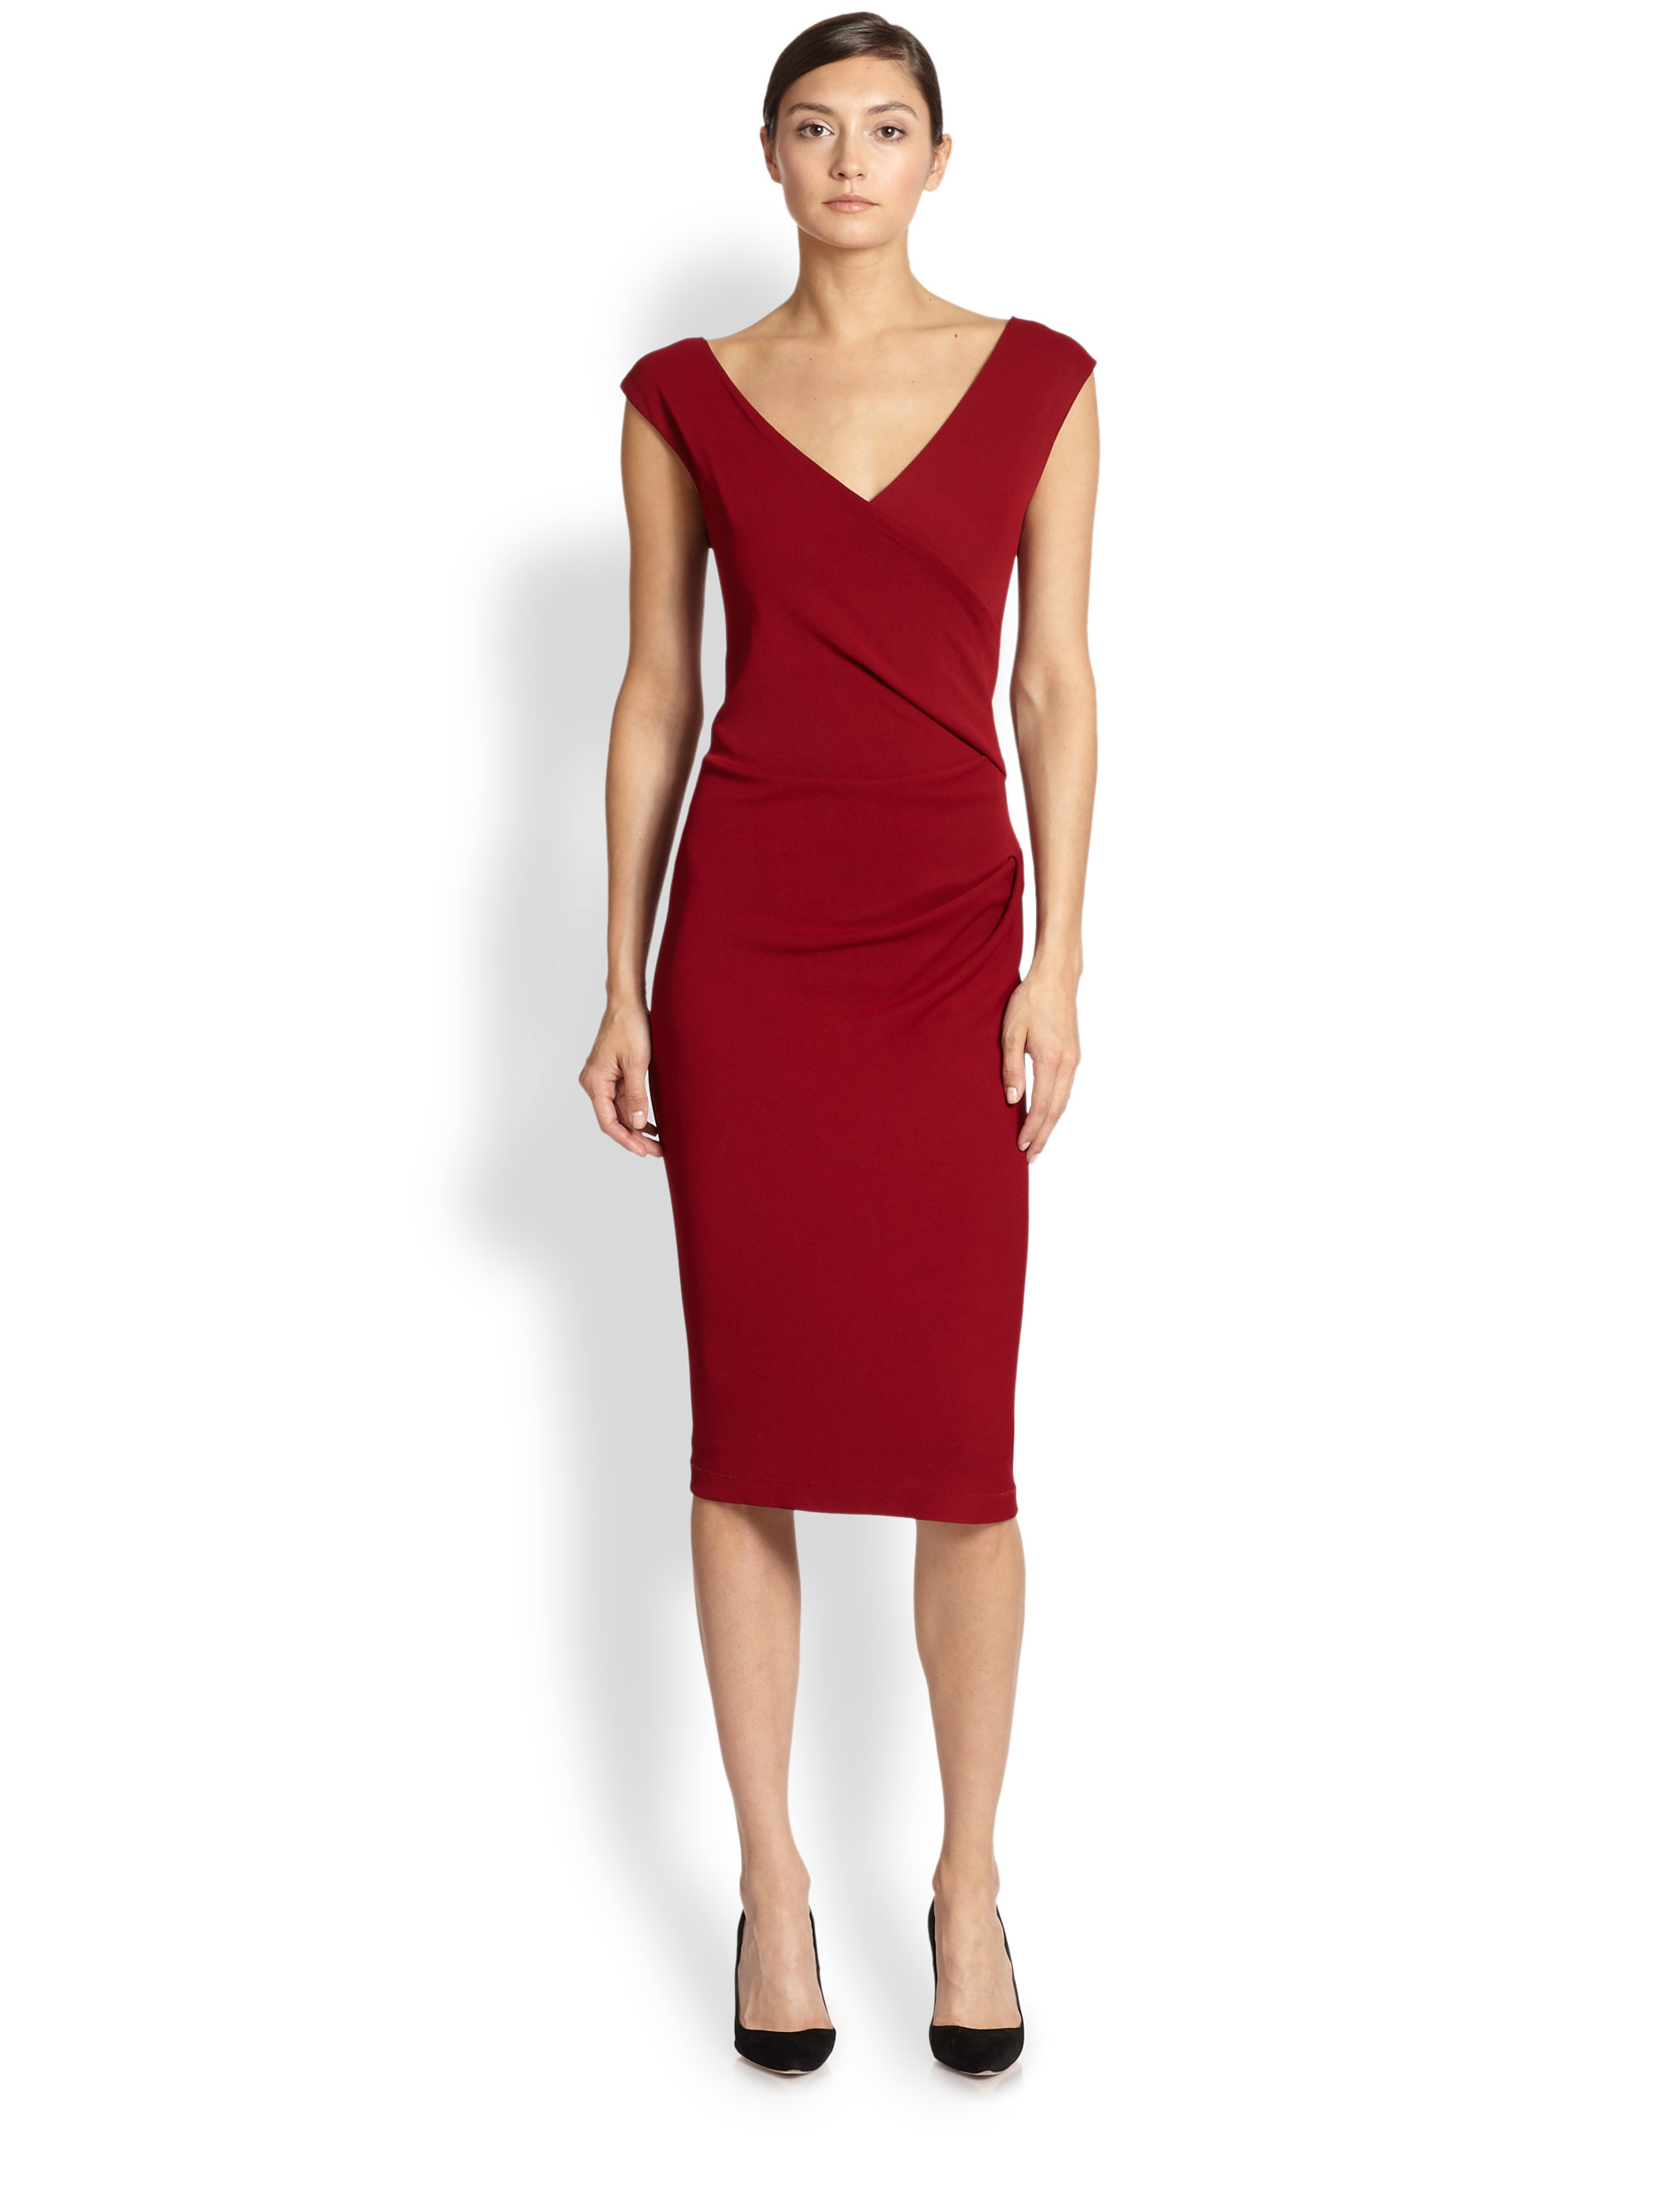 Donna karan new york capsleeve draped jersey dress in red for Donna karen new york